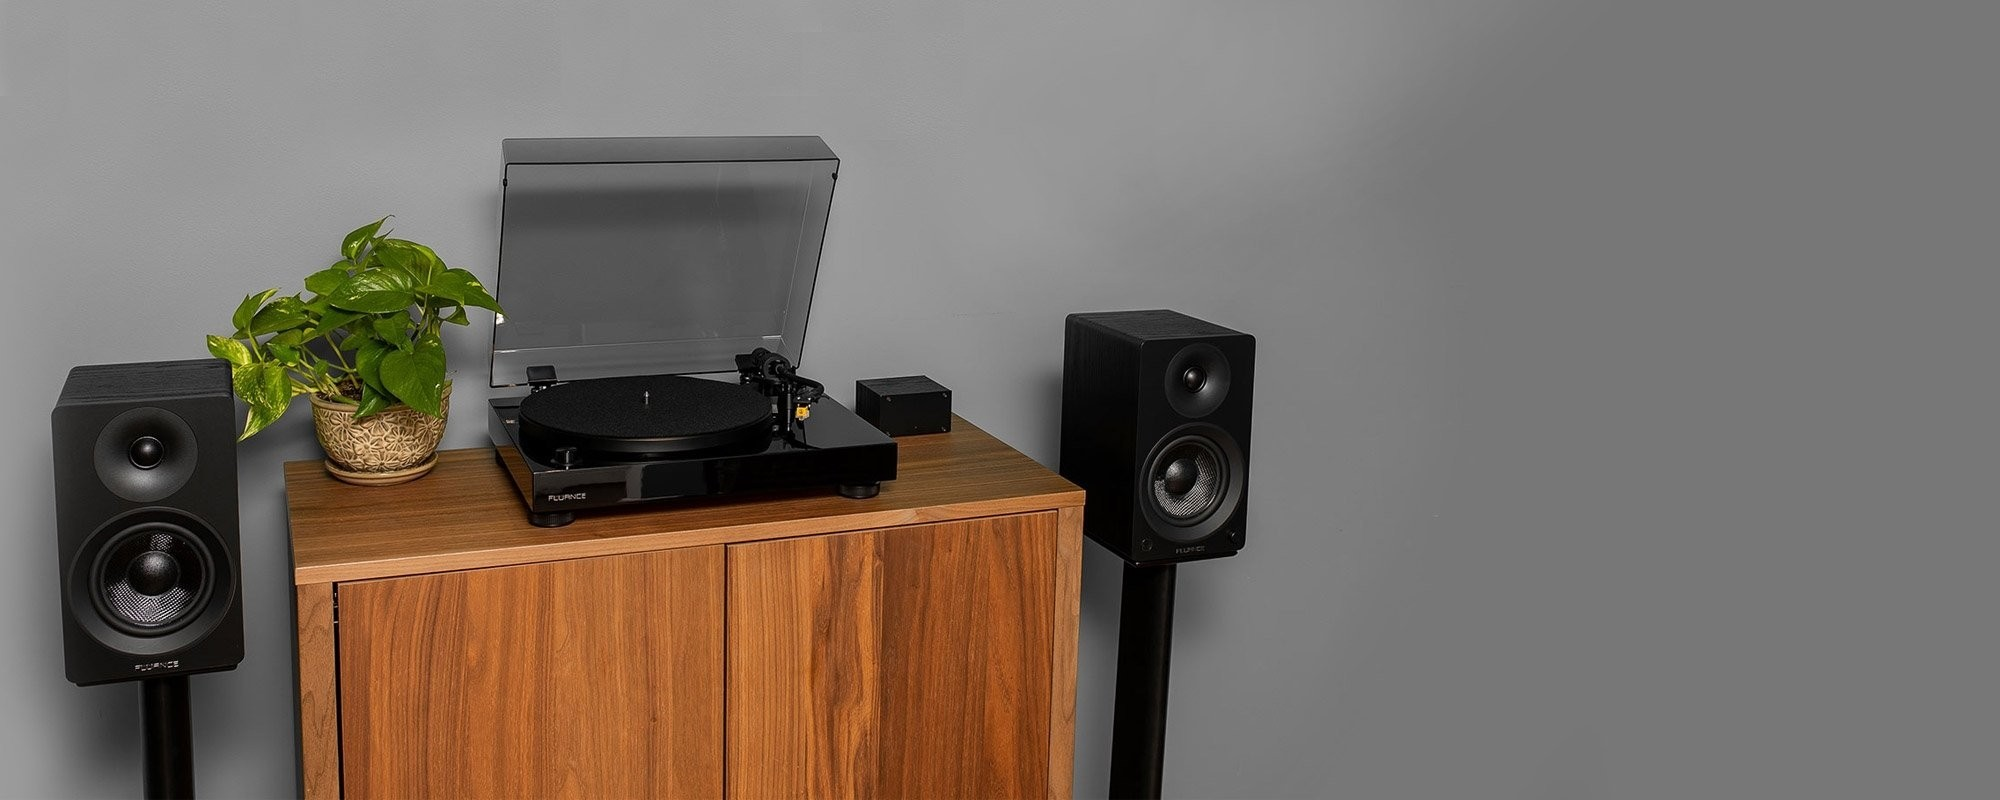 "RT80 Classic High Fidelity Vinyl Turntable with Ai41 Powered 5"" Stereo Bookshelf Speakers - Lifestyle"